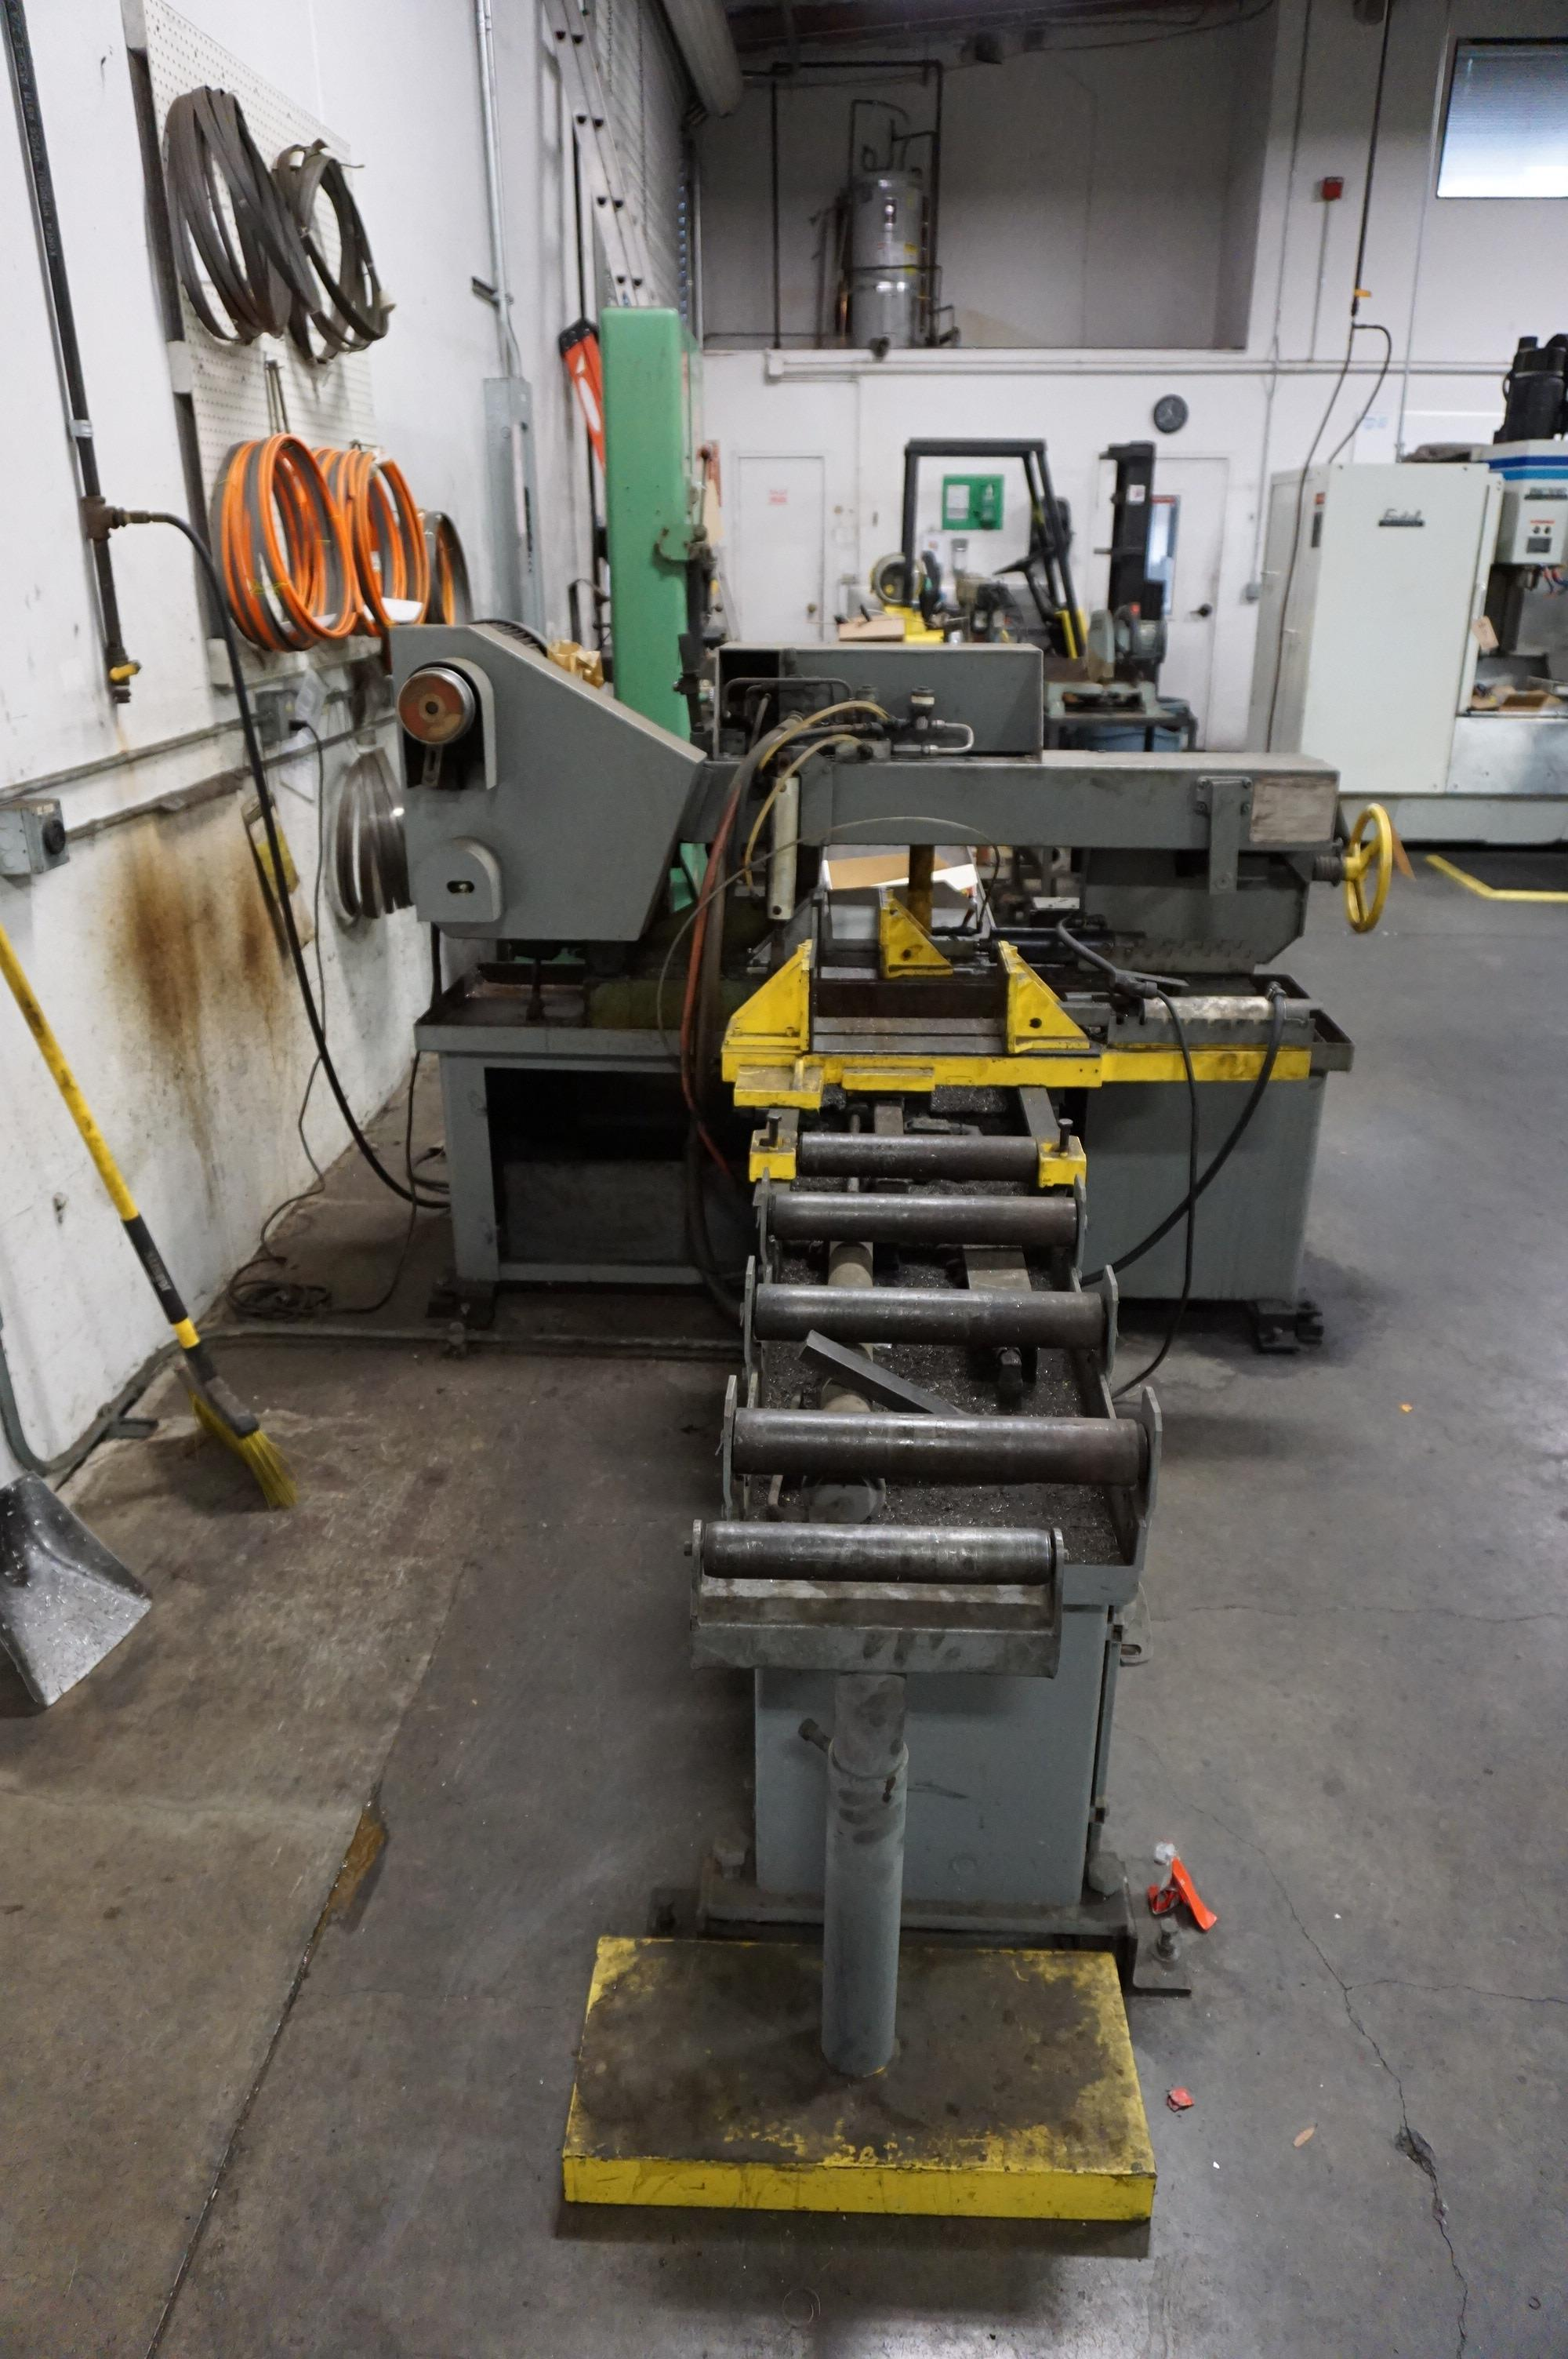 DO-ALL C-912A AUTOMATIC HORIZONTAL CUTTING BANDSAW, WITH MANUALS AND NEW BAND SAW BLADES - Image 5 of 6